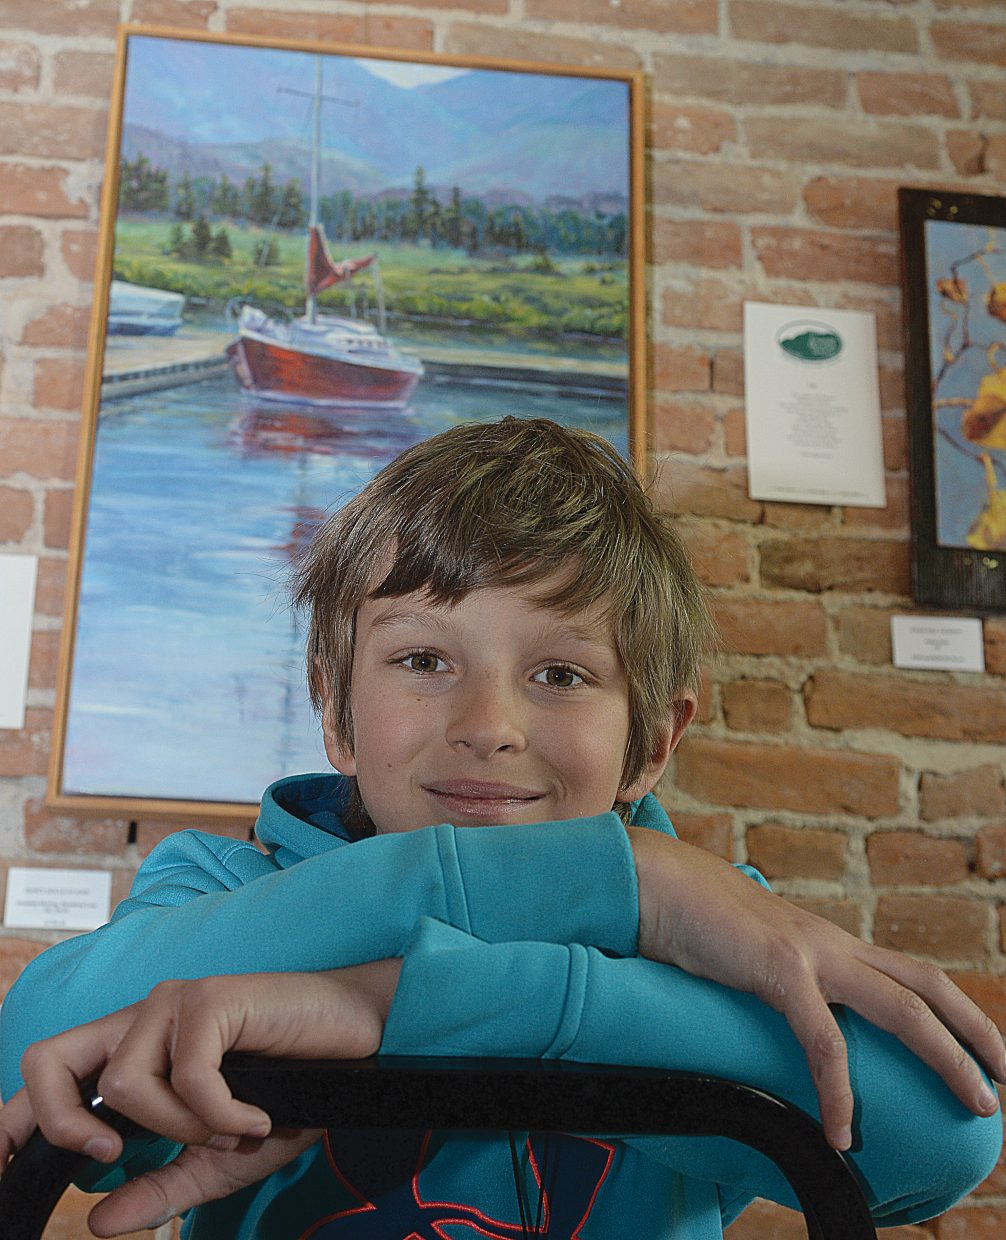 Emerald Mountain School student Thomas Faunce found inspiration in this art work by Dancy St. John on display at the Circle & Gallery in Steamboat Springs.